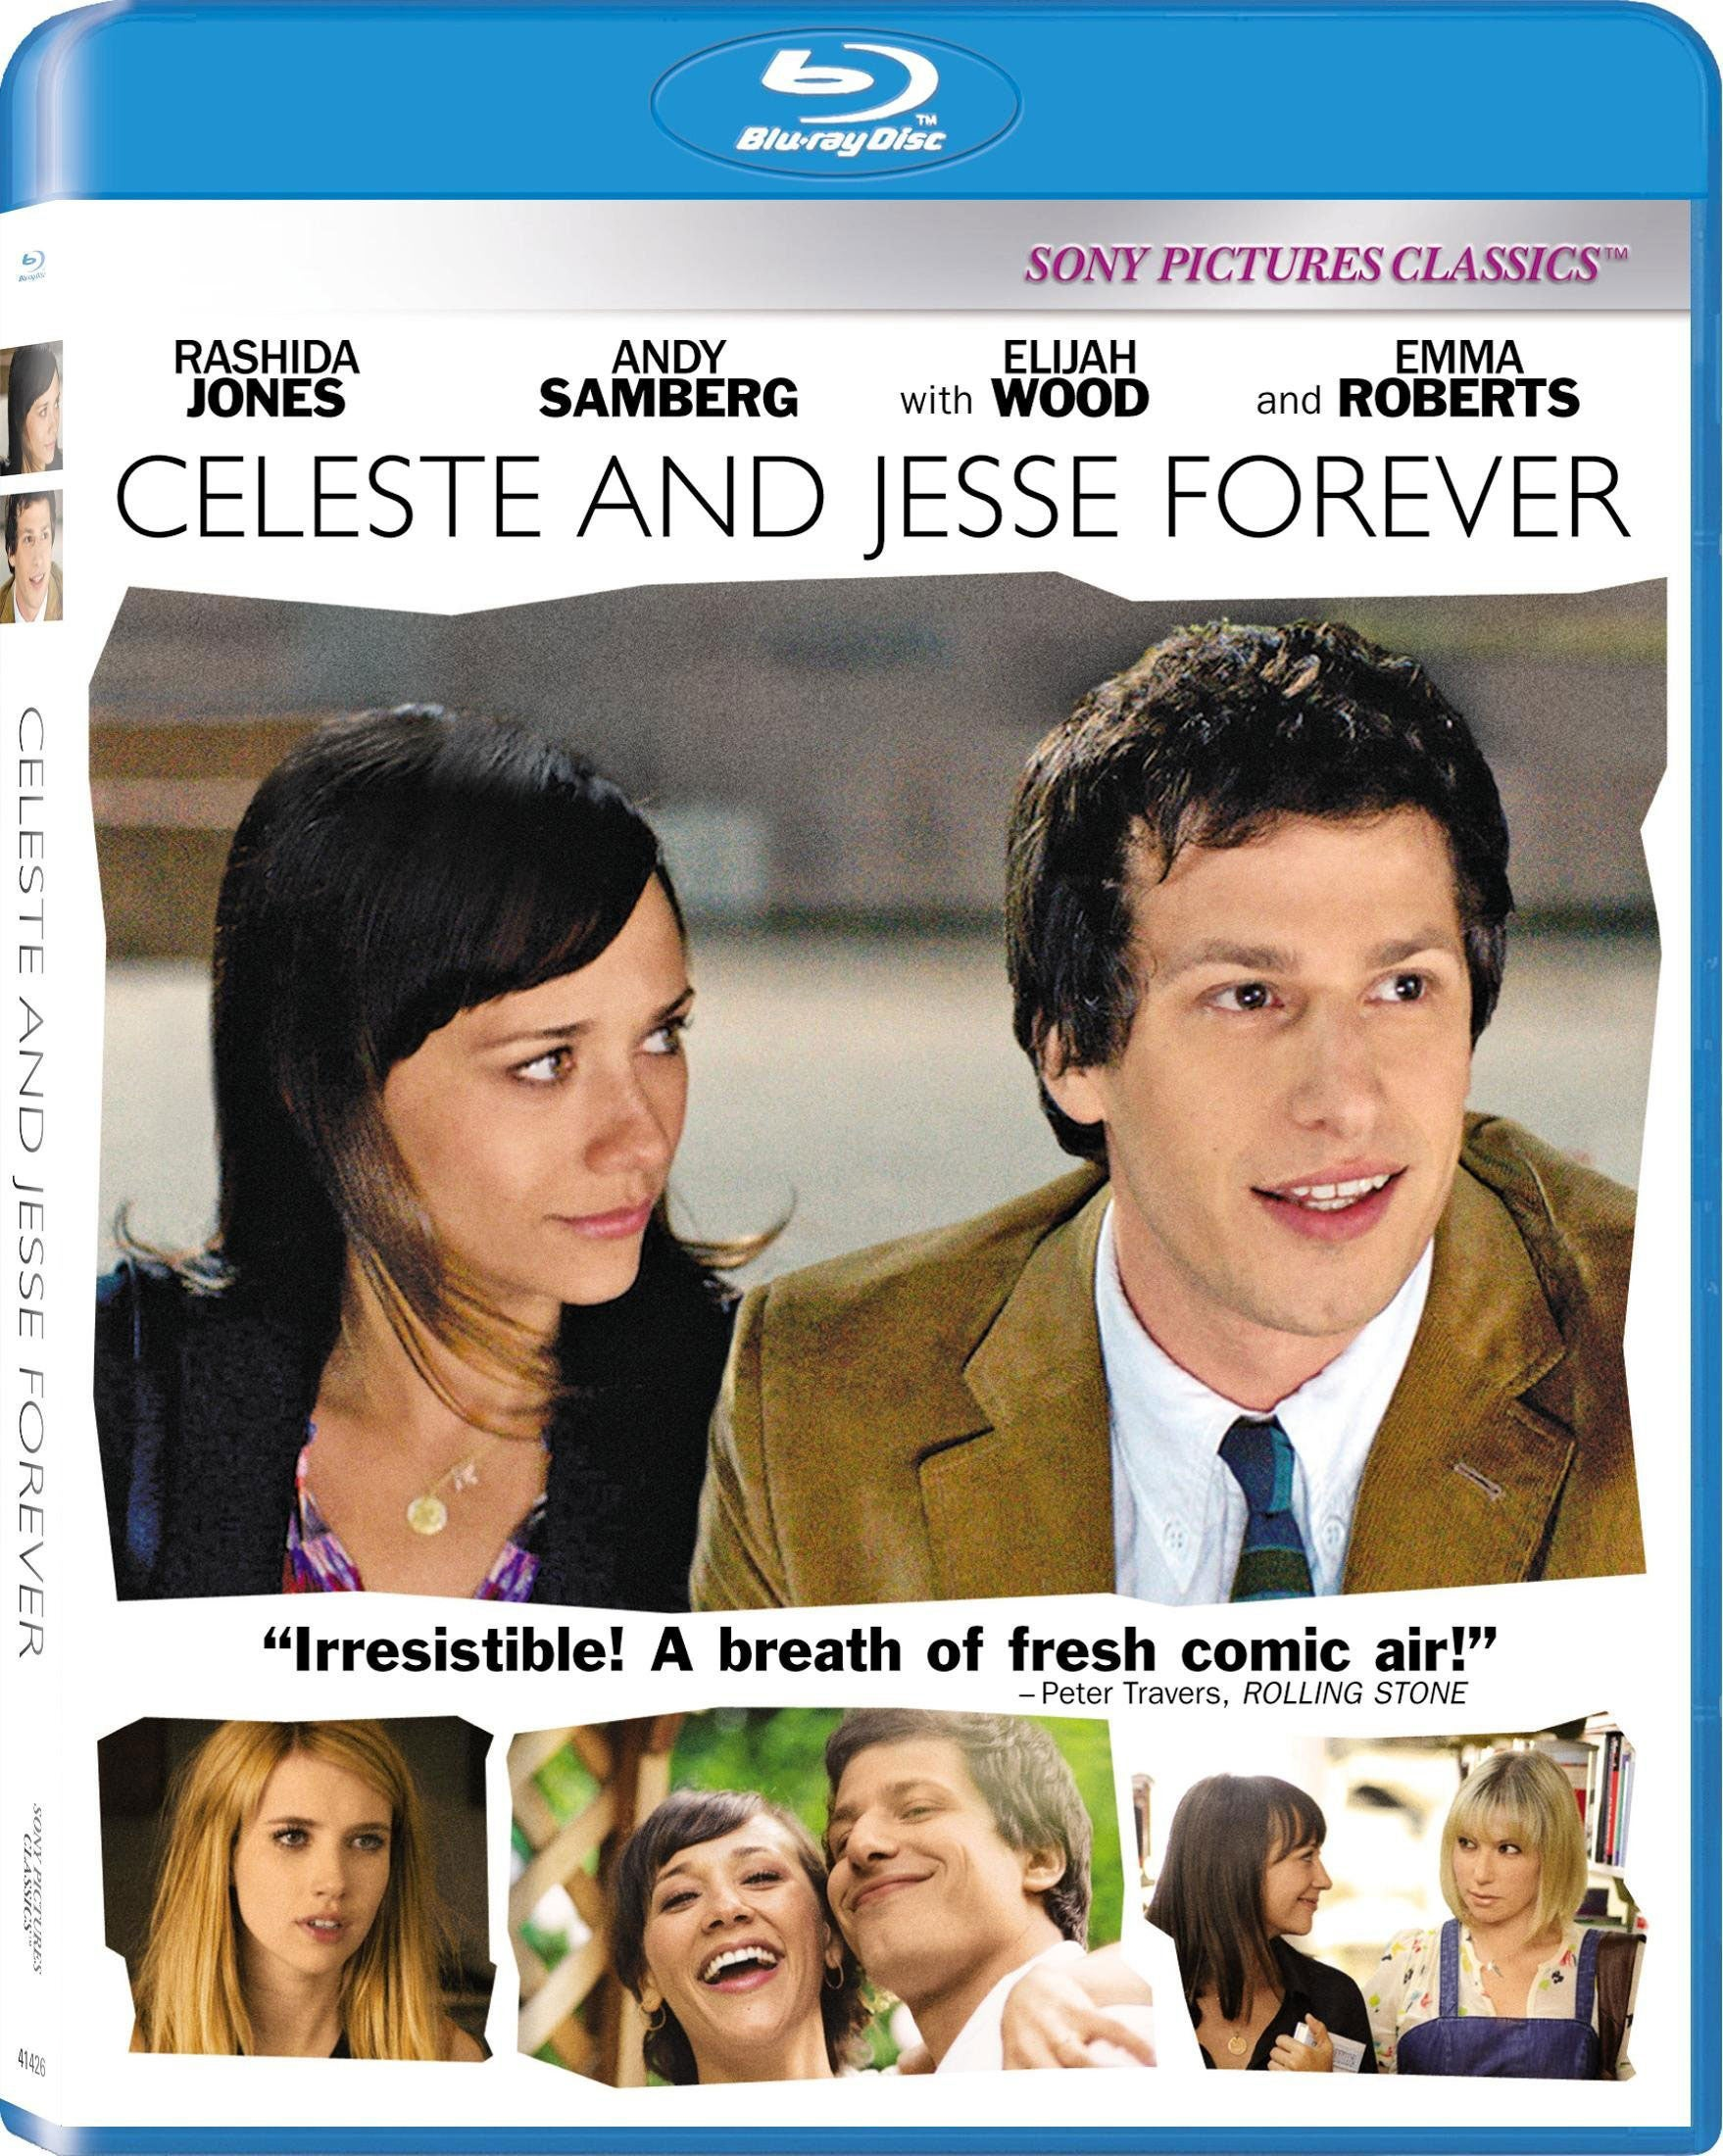 Celeste and Jesse Forever (Blu-ray Disc)